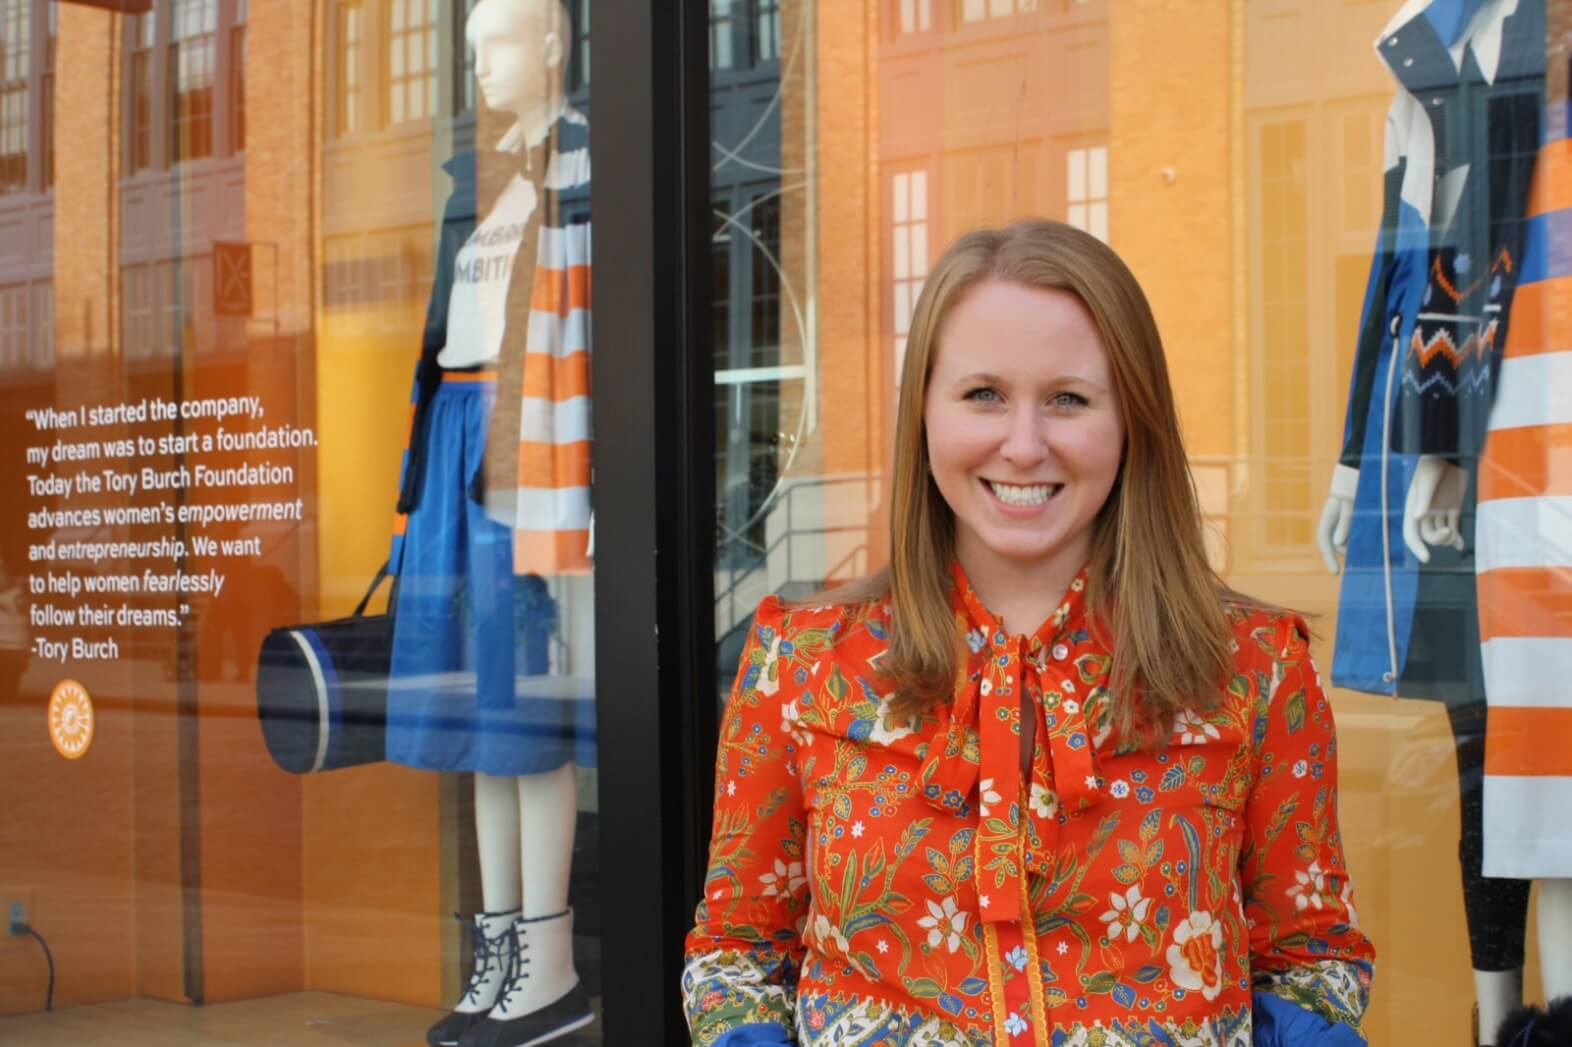 85176b4aeed District Profile  Molly Heffernan - Meatpacking District Official ...